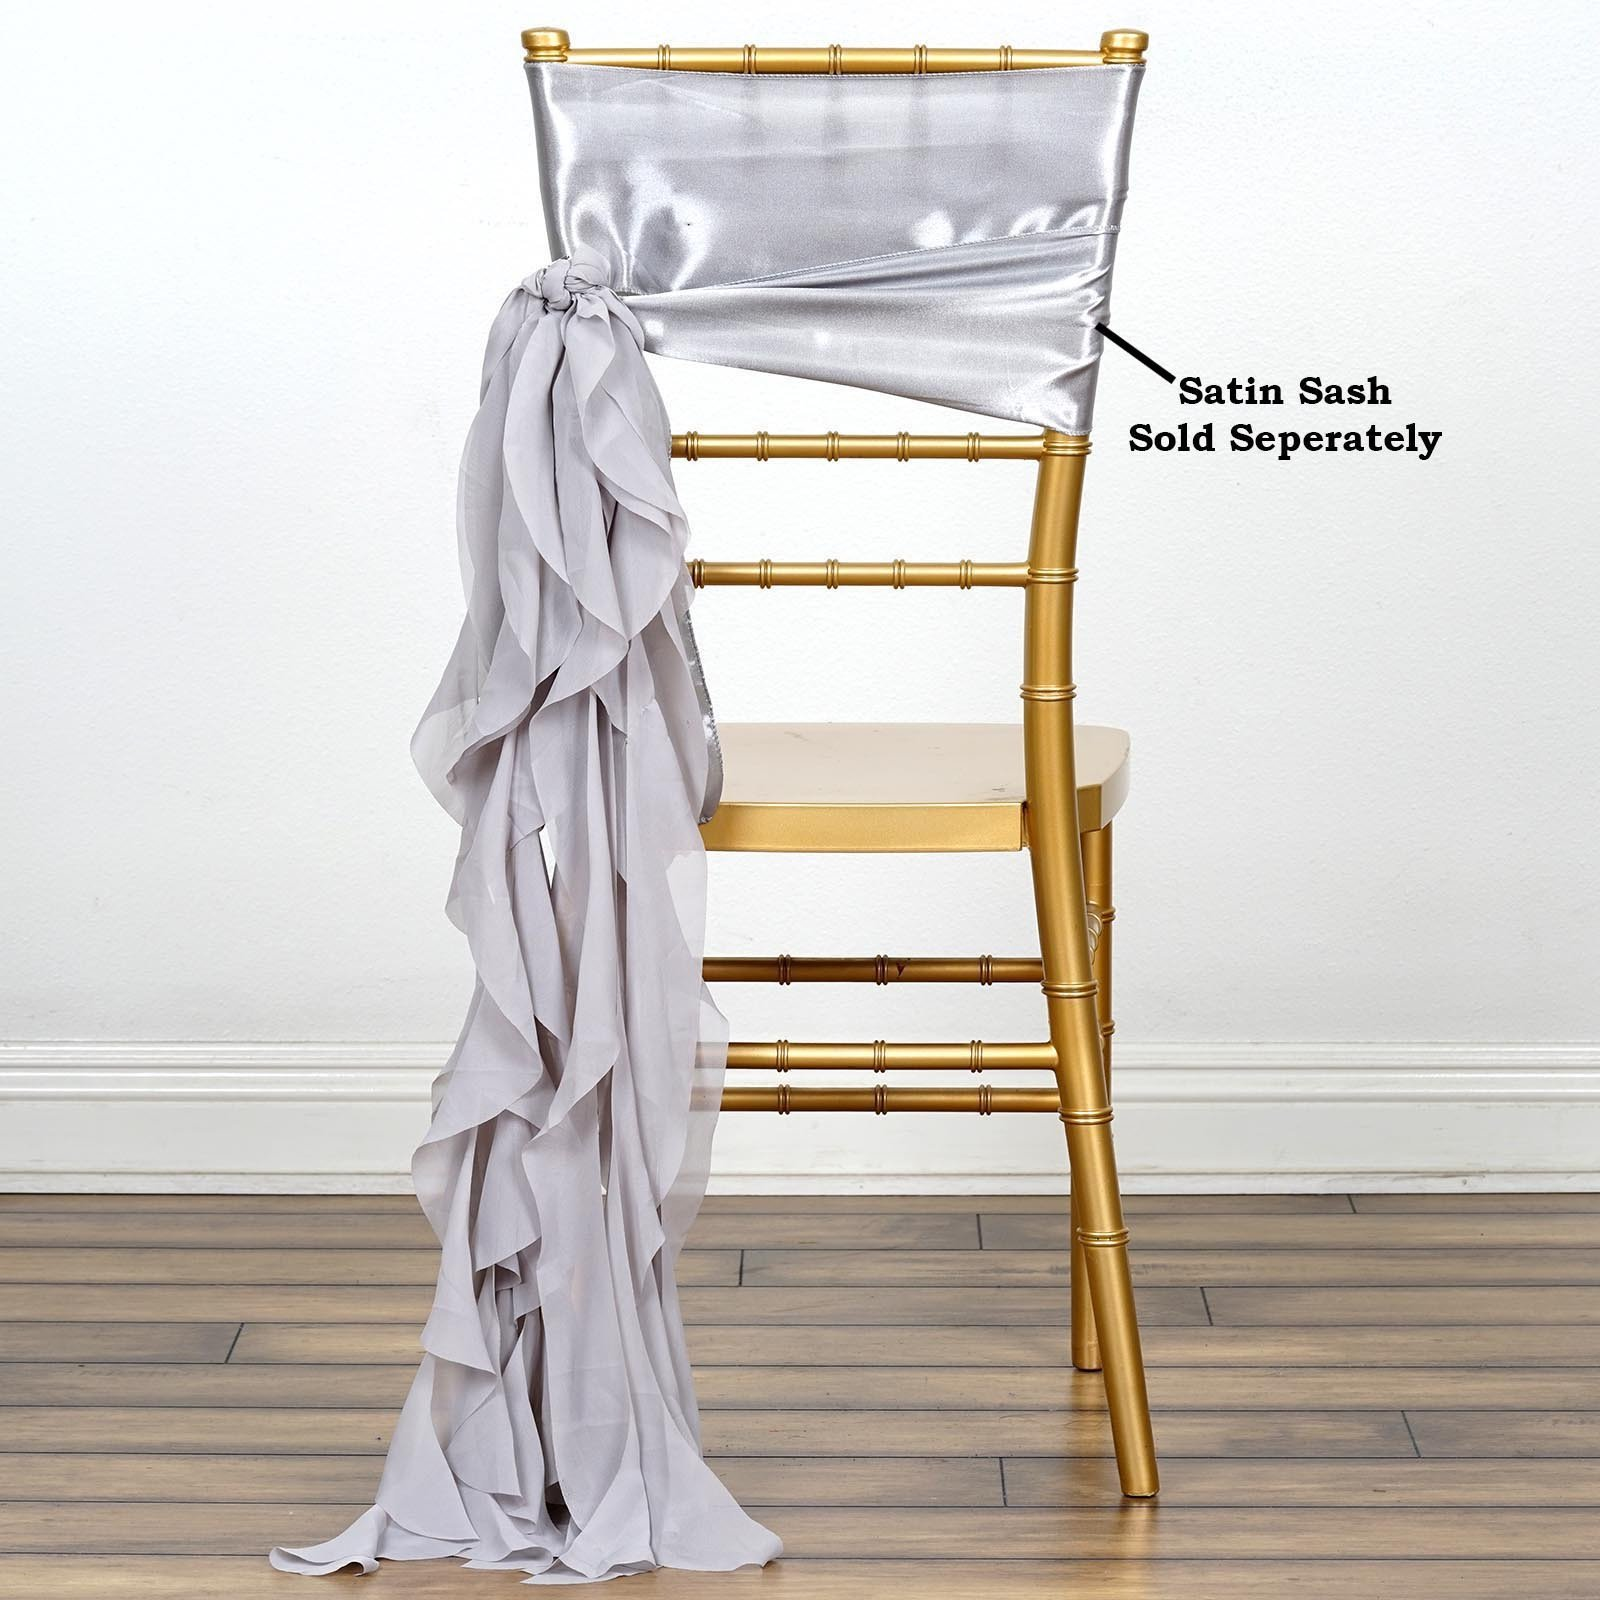 Efavormart 5pcs Chiffon Silver Curly Chair Sashes For Home Wedding Birthday Party Dance Banquet Event Decoration